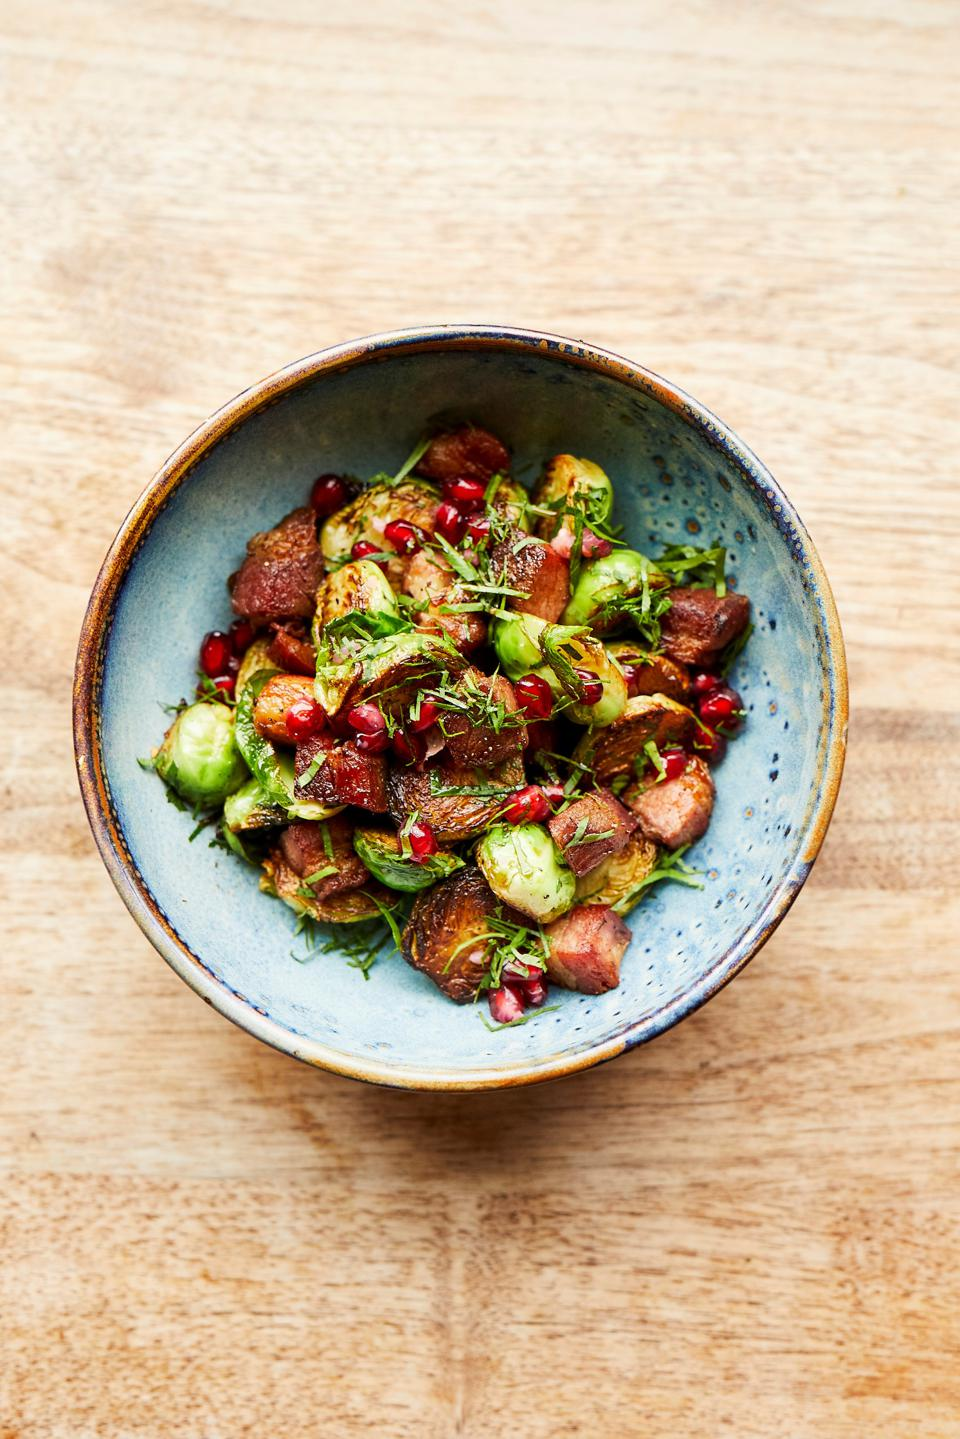 a dish of Brussels sprouts